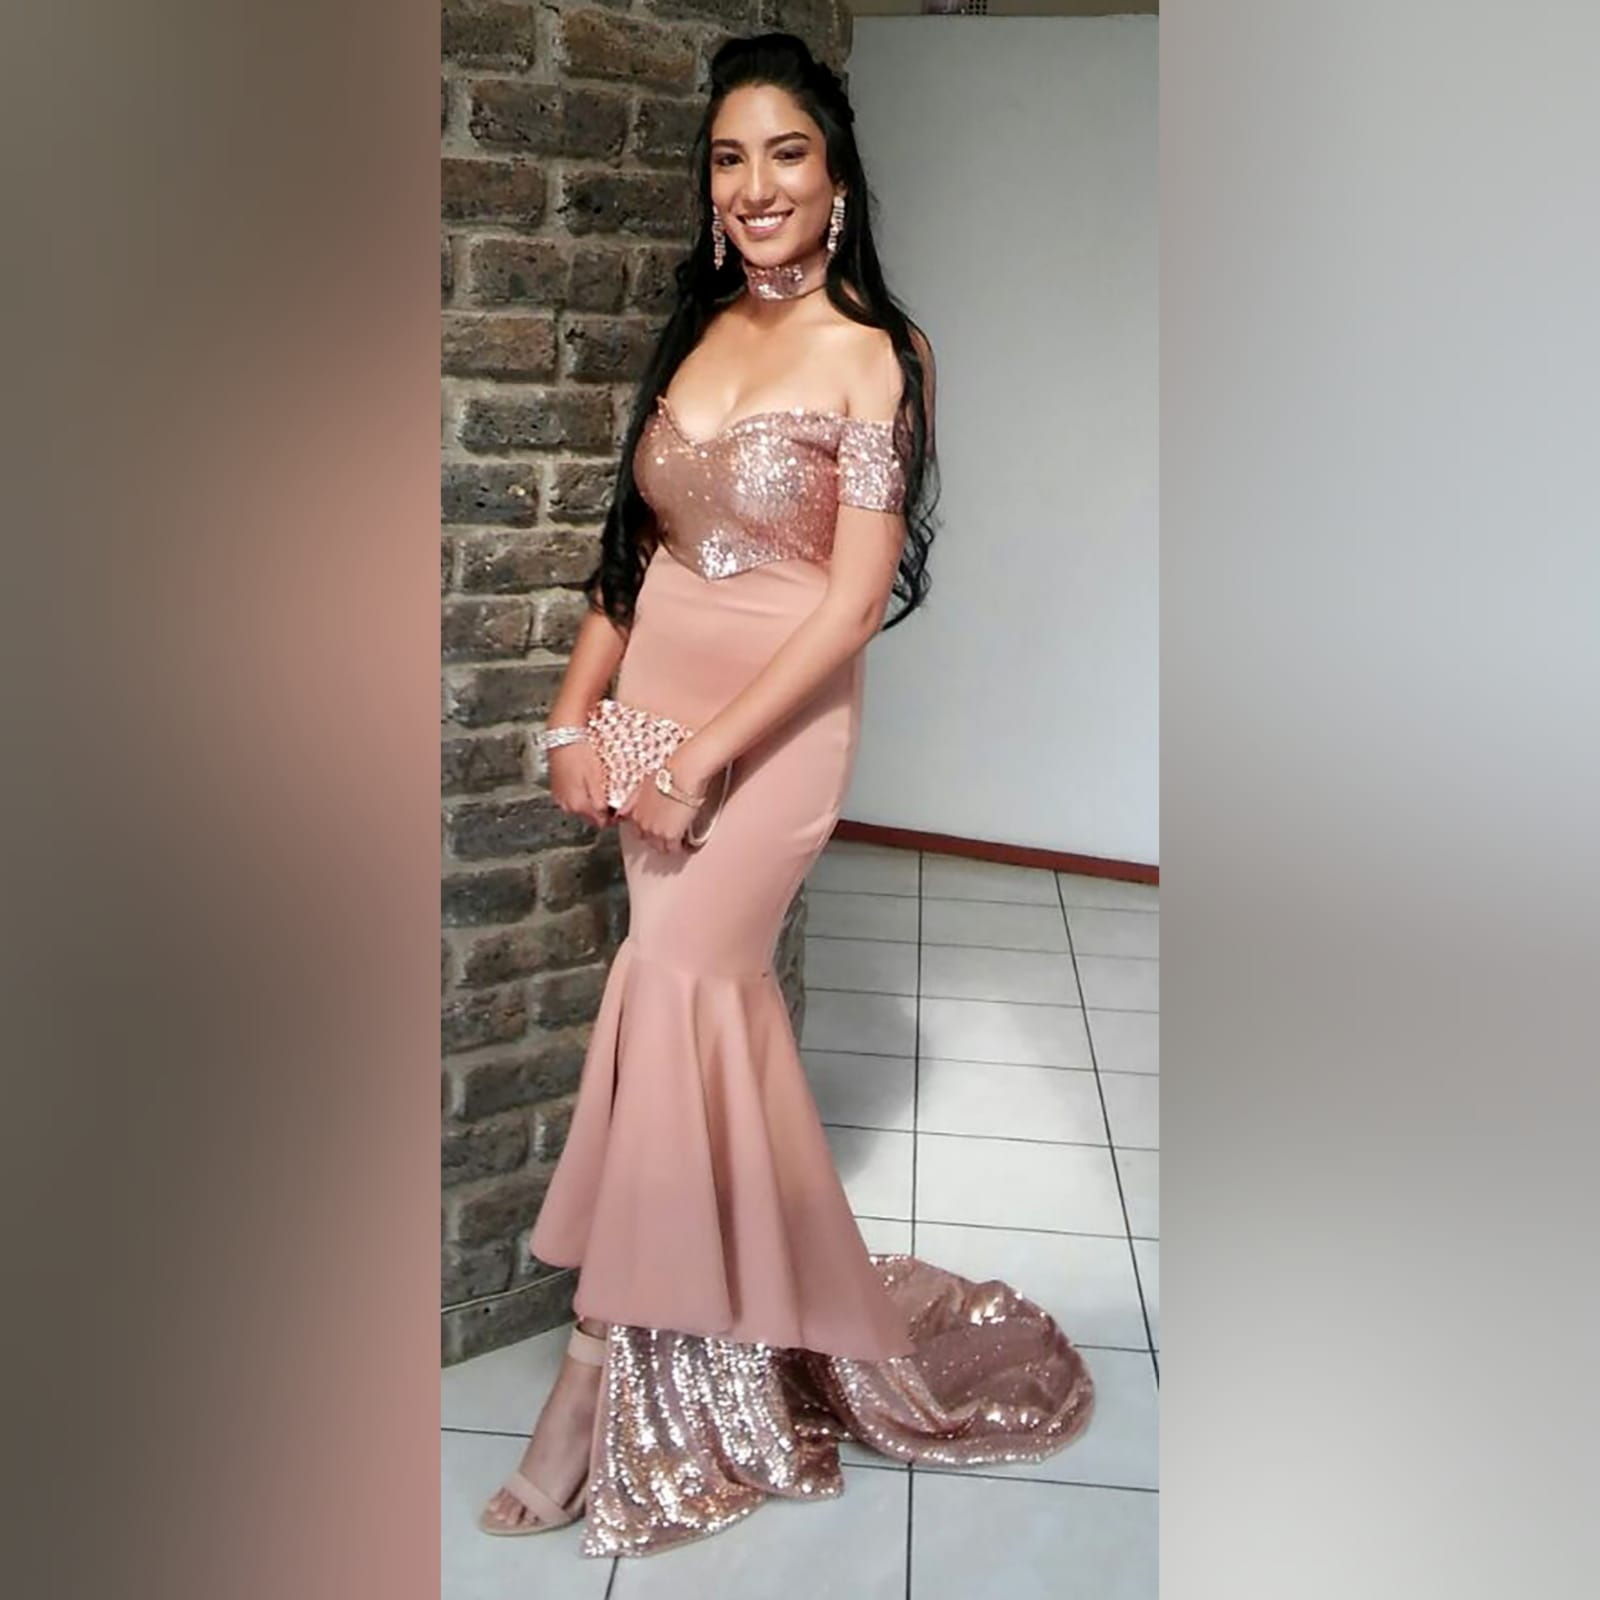 Rose gold 2 tone mermaid prom dress 5 rose gold 2 tone mermaid prom dress, off-shoulder dress with a sweetheart neckline and off-shoulder short sleeves. Double layer from knee down, with sequins, creating a train with a slit int the front middle. Comes with a matching choker.